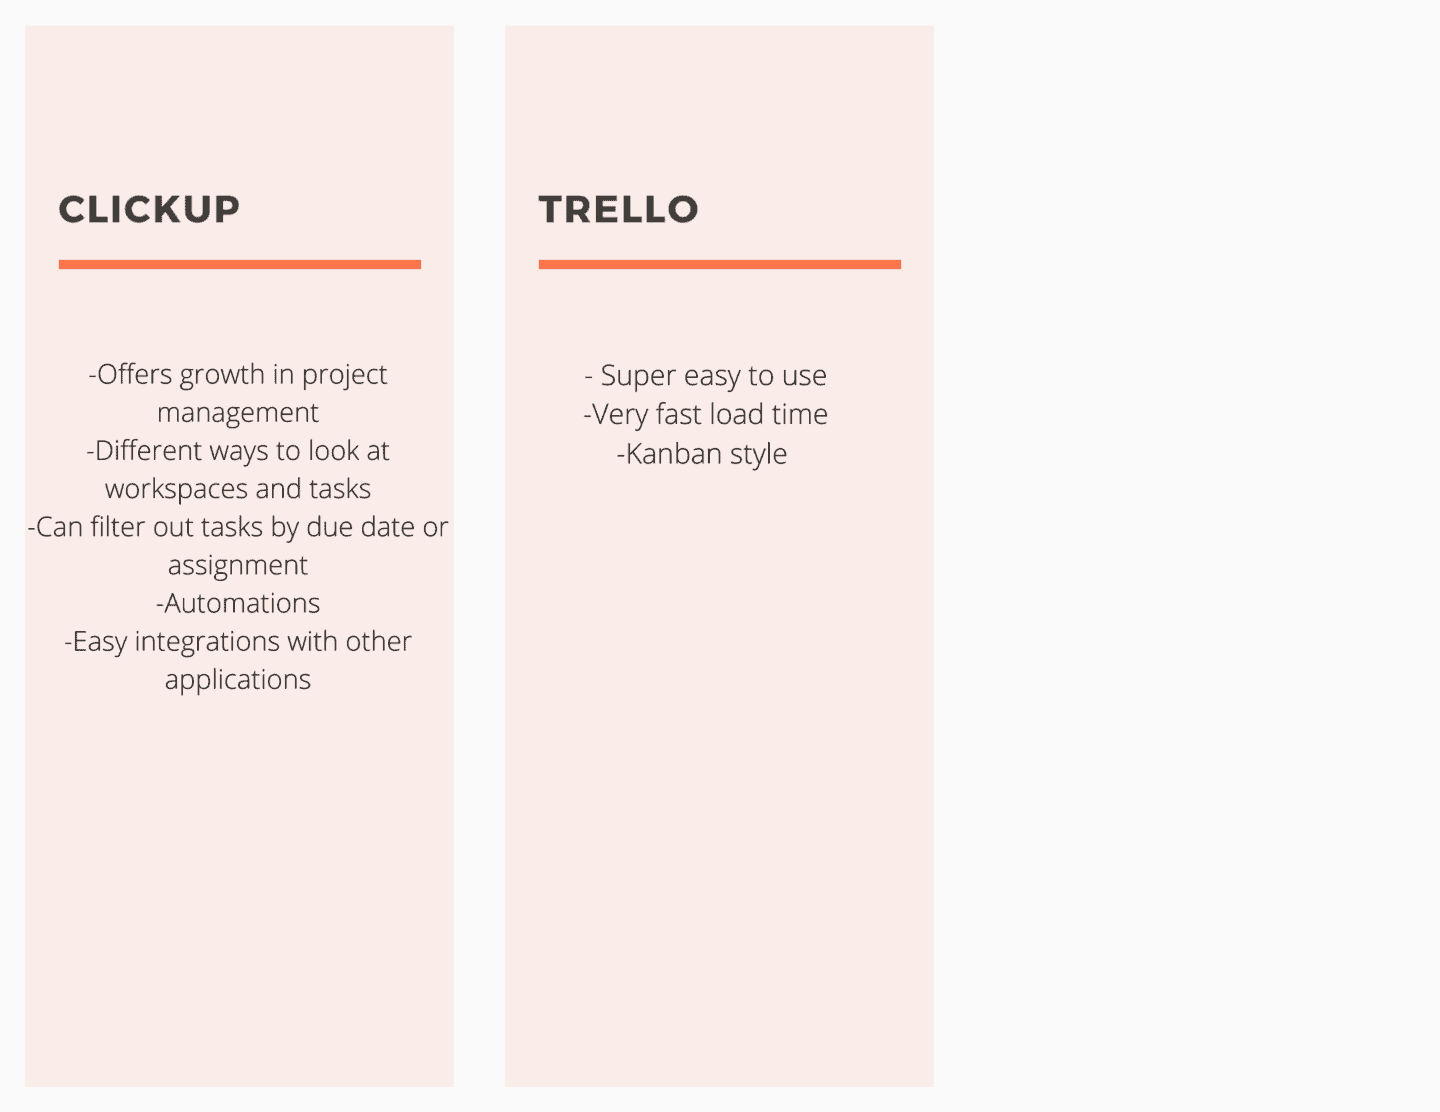 ClickUp vs Trello comparison